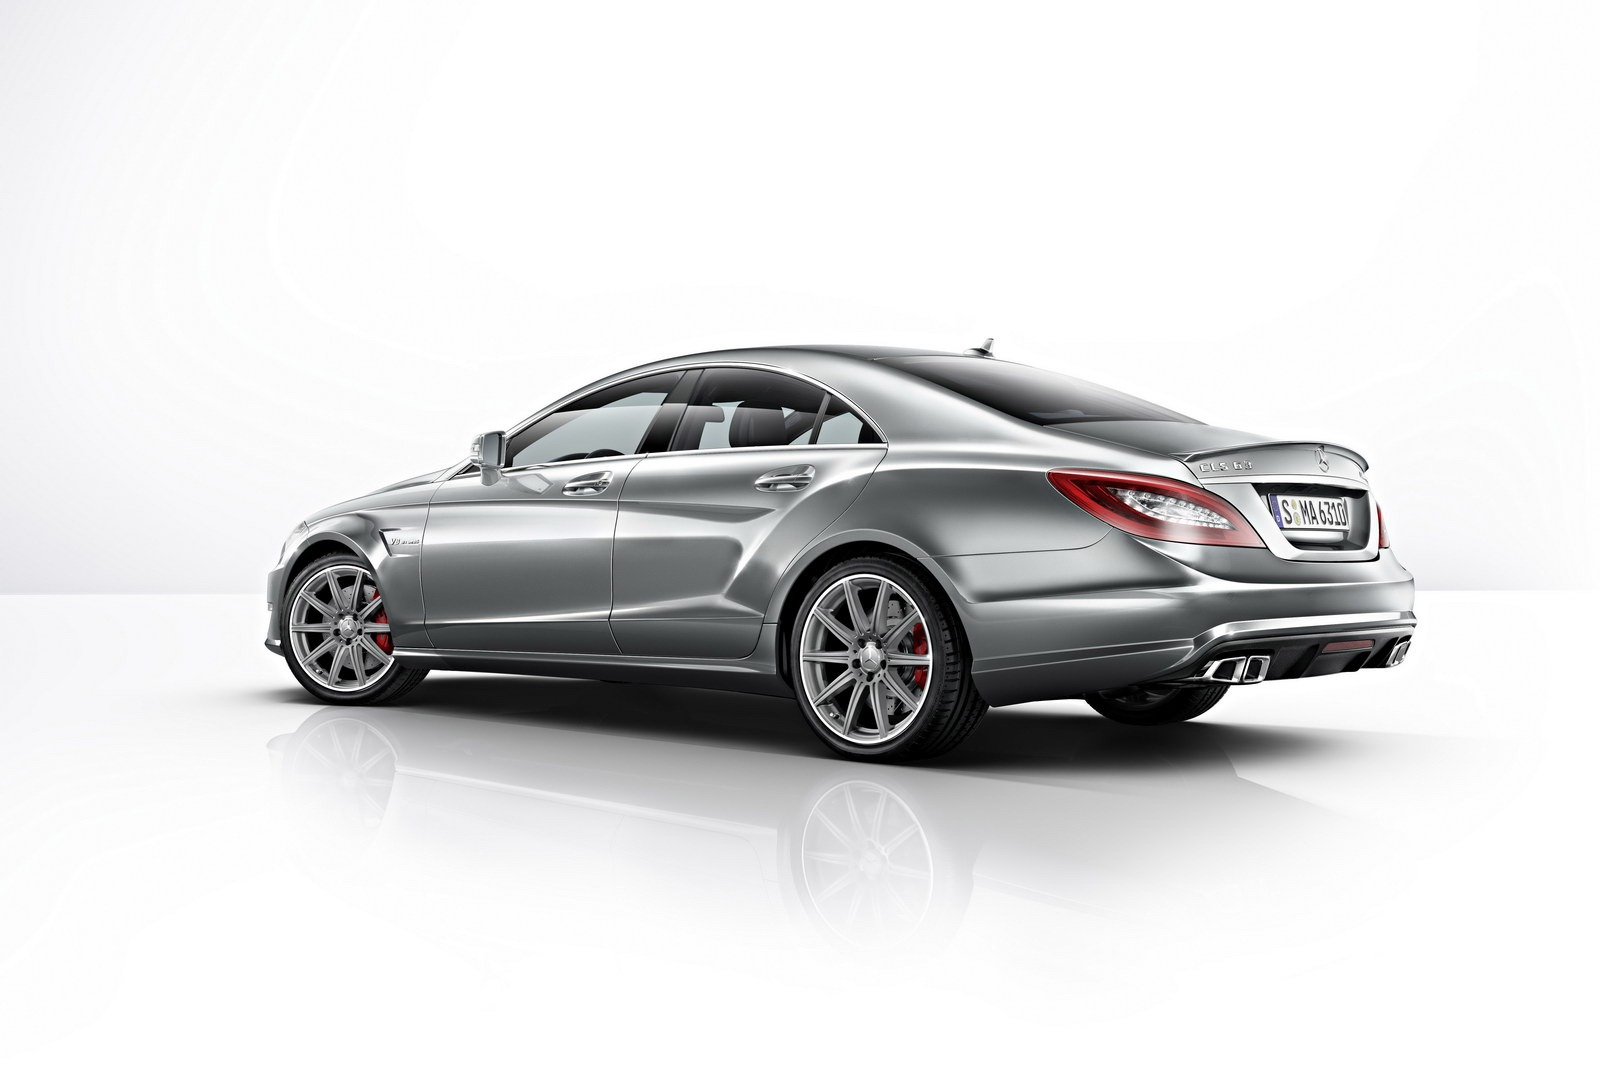 2014 mercedes cls 63 amg gets more power 4matic for 2014 mercedes benz cls63 amg 4matic